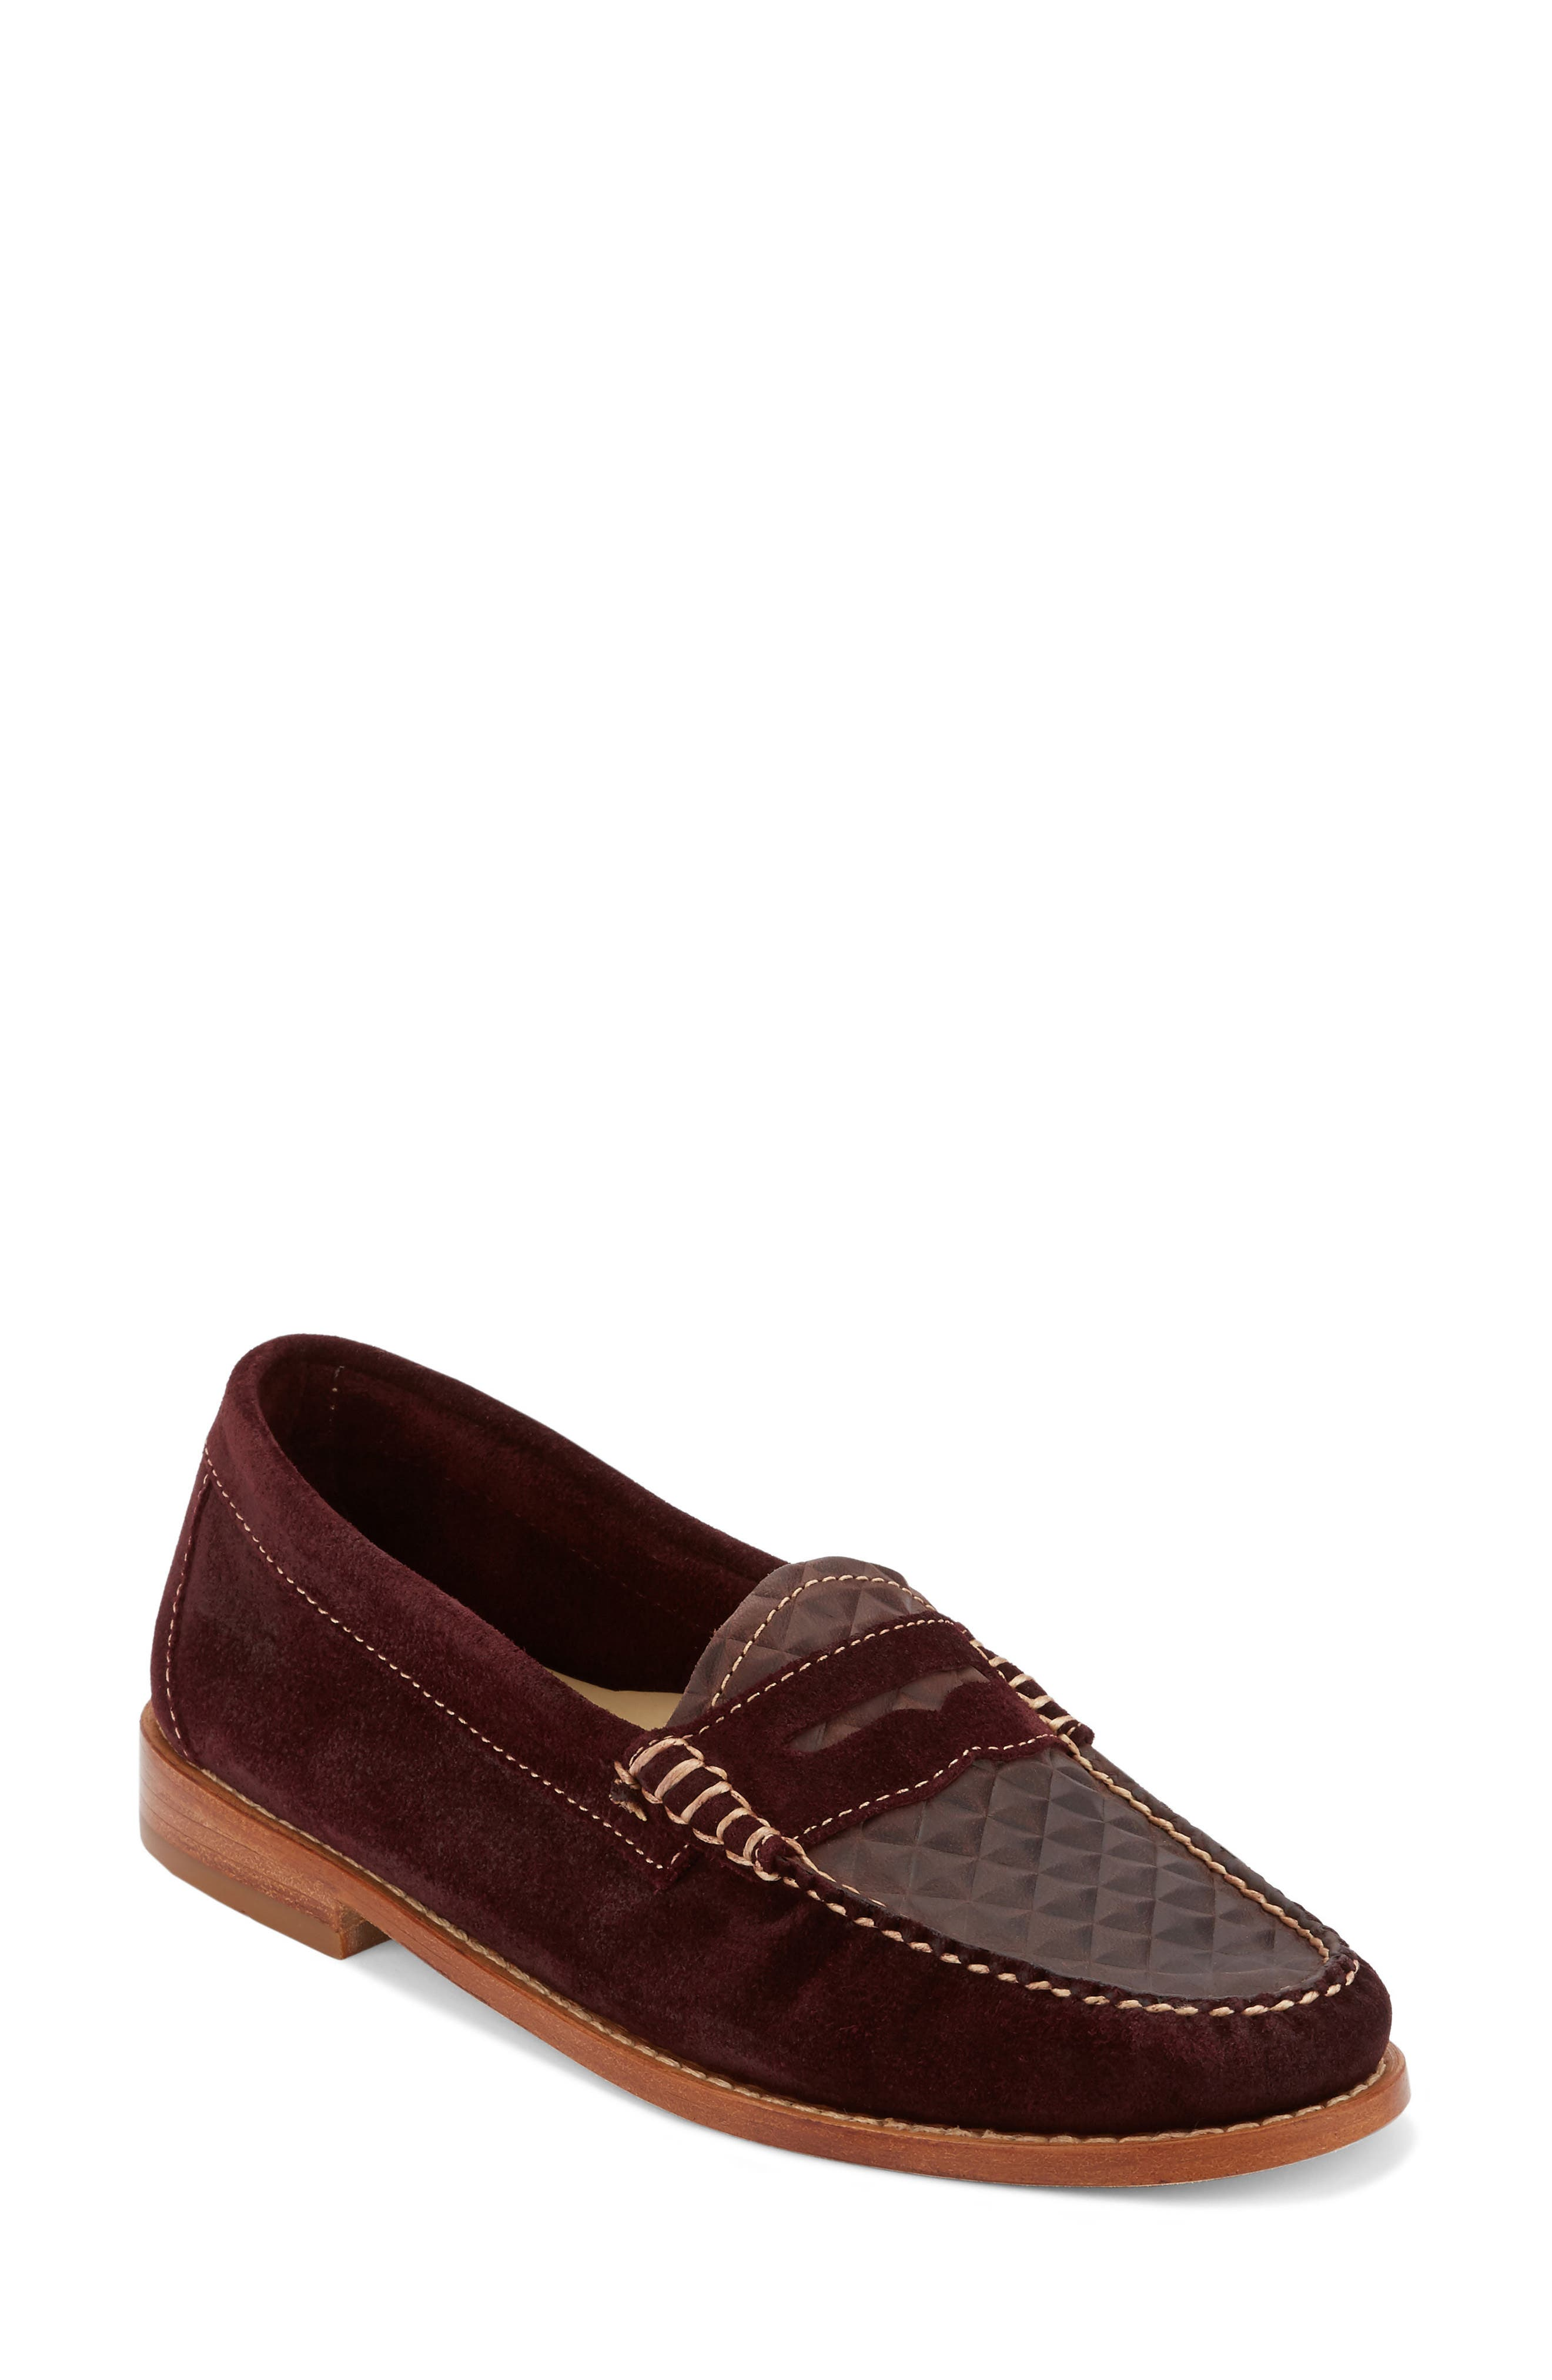 'Whitney' Loafer,                             Main thumbnail 11, color,